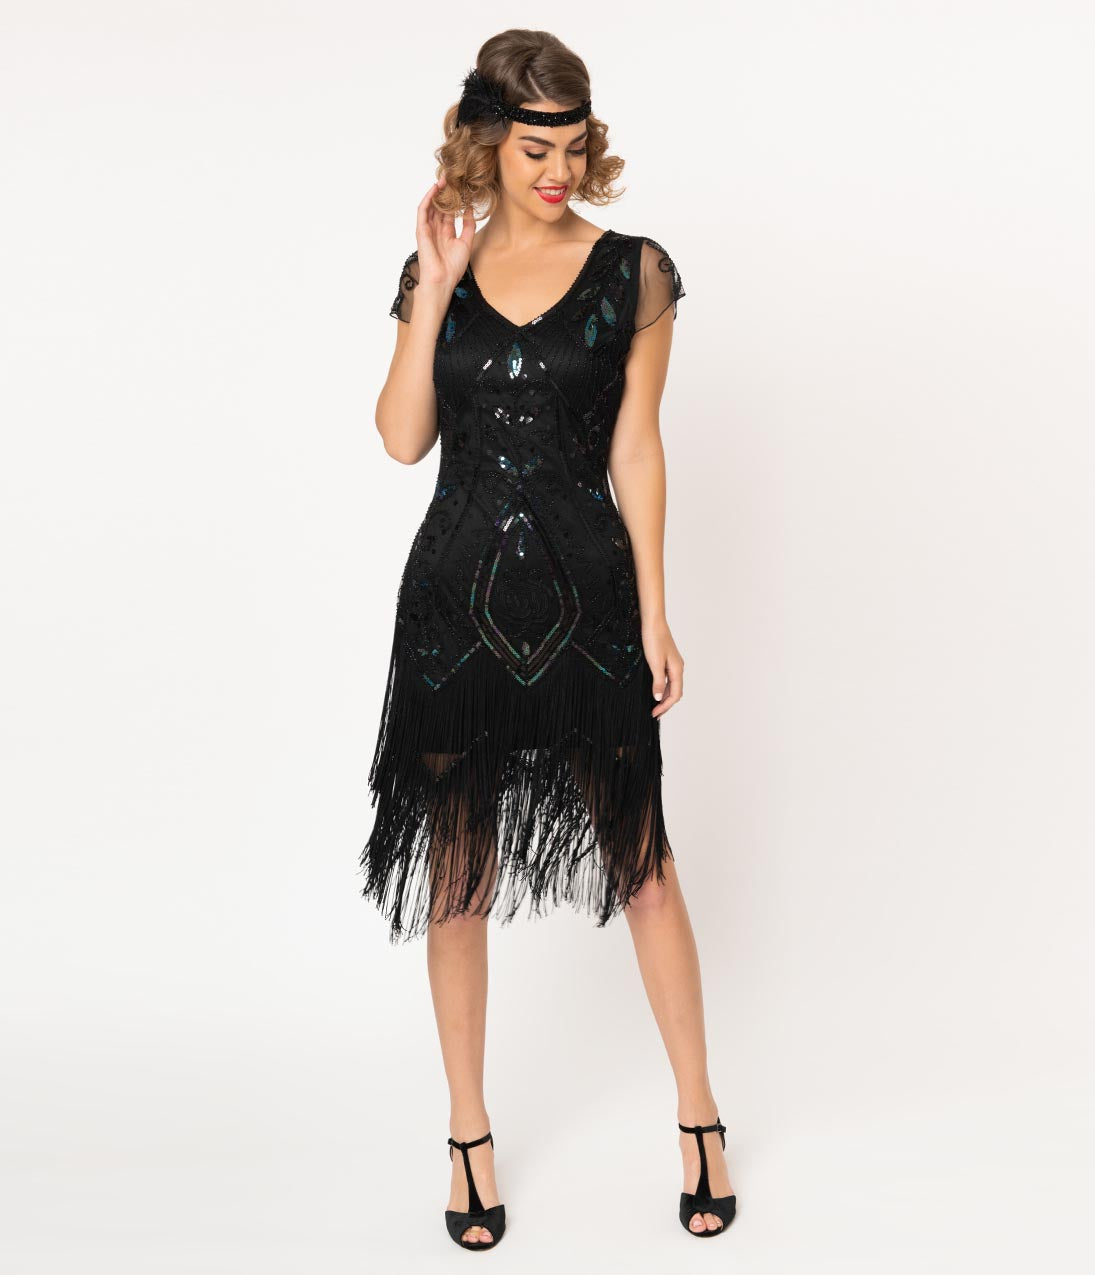 1930s Day Dresses, Afternoon Dresses History Unique Vintage 1920S Black Beaded Noele Fringe Flapper Dress $58.00 AT vintagedancer.com